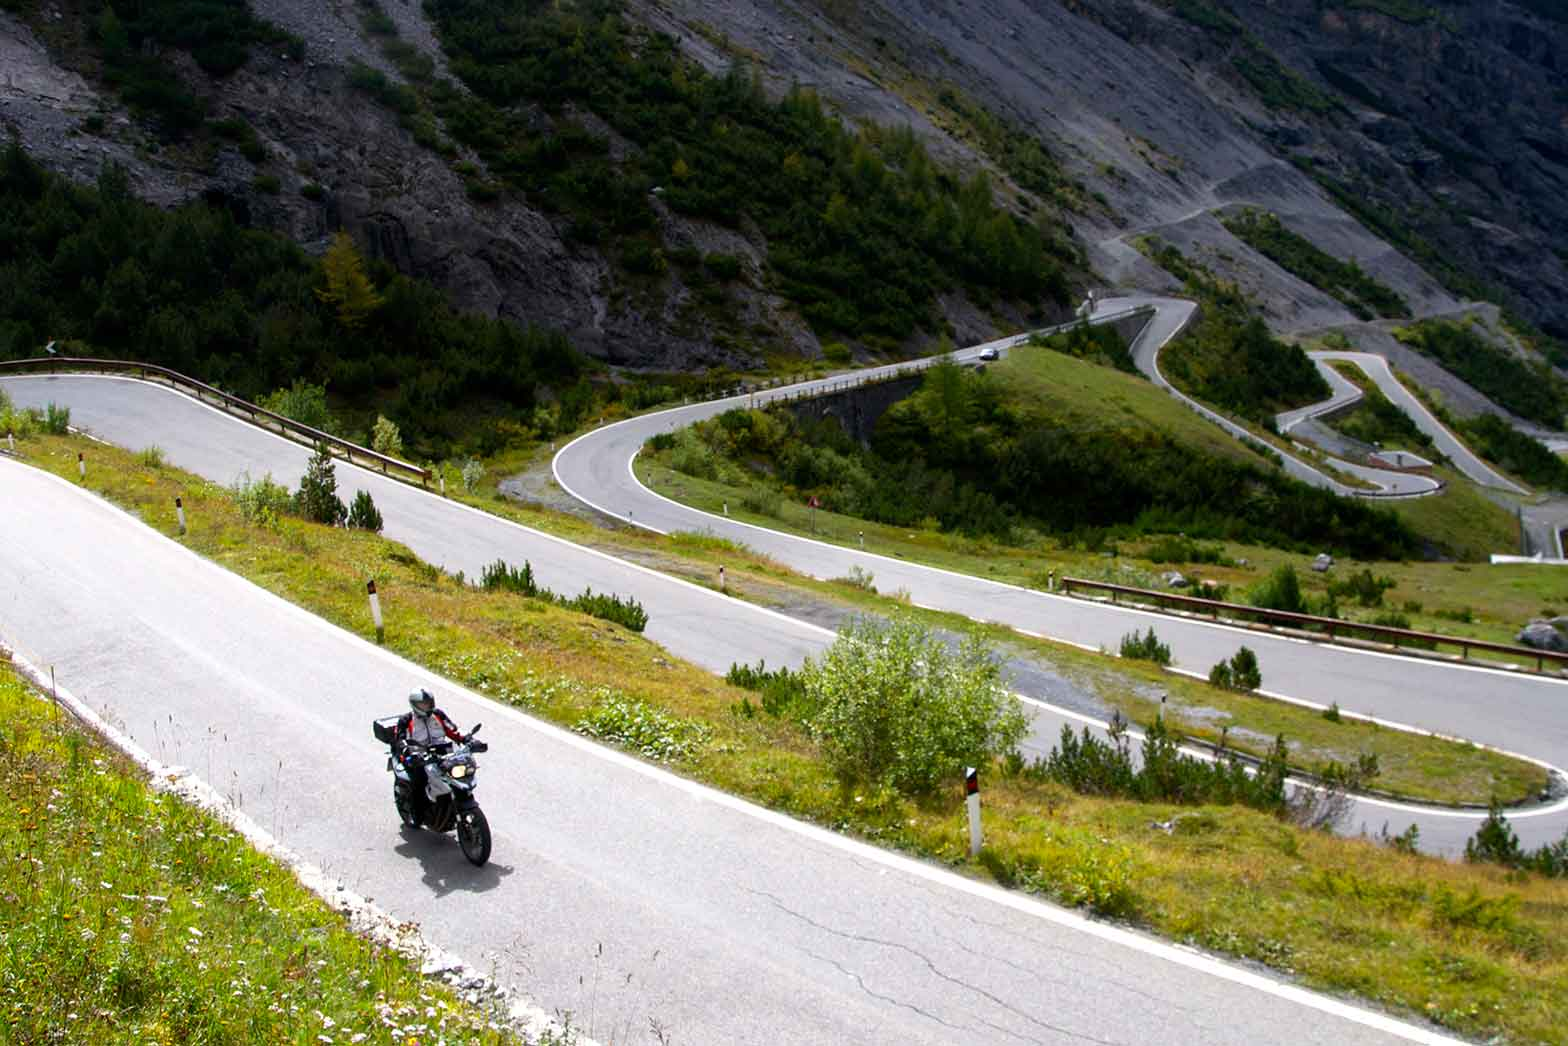 Riding the Stelvio Pass